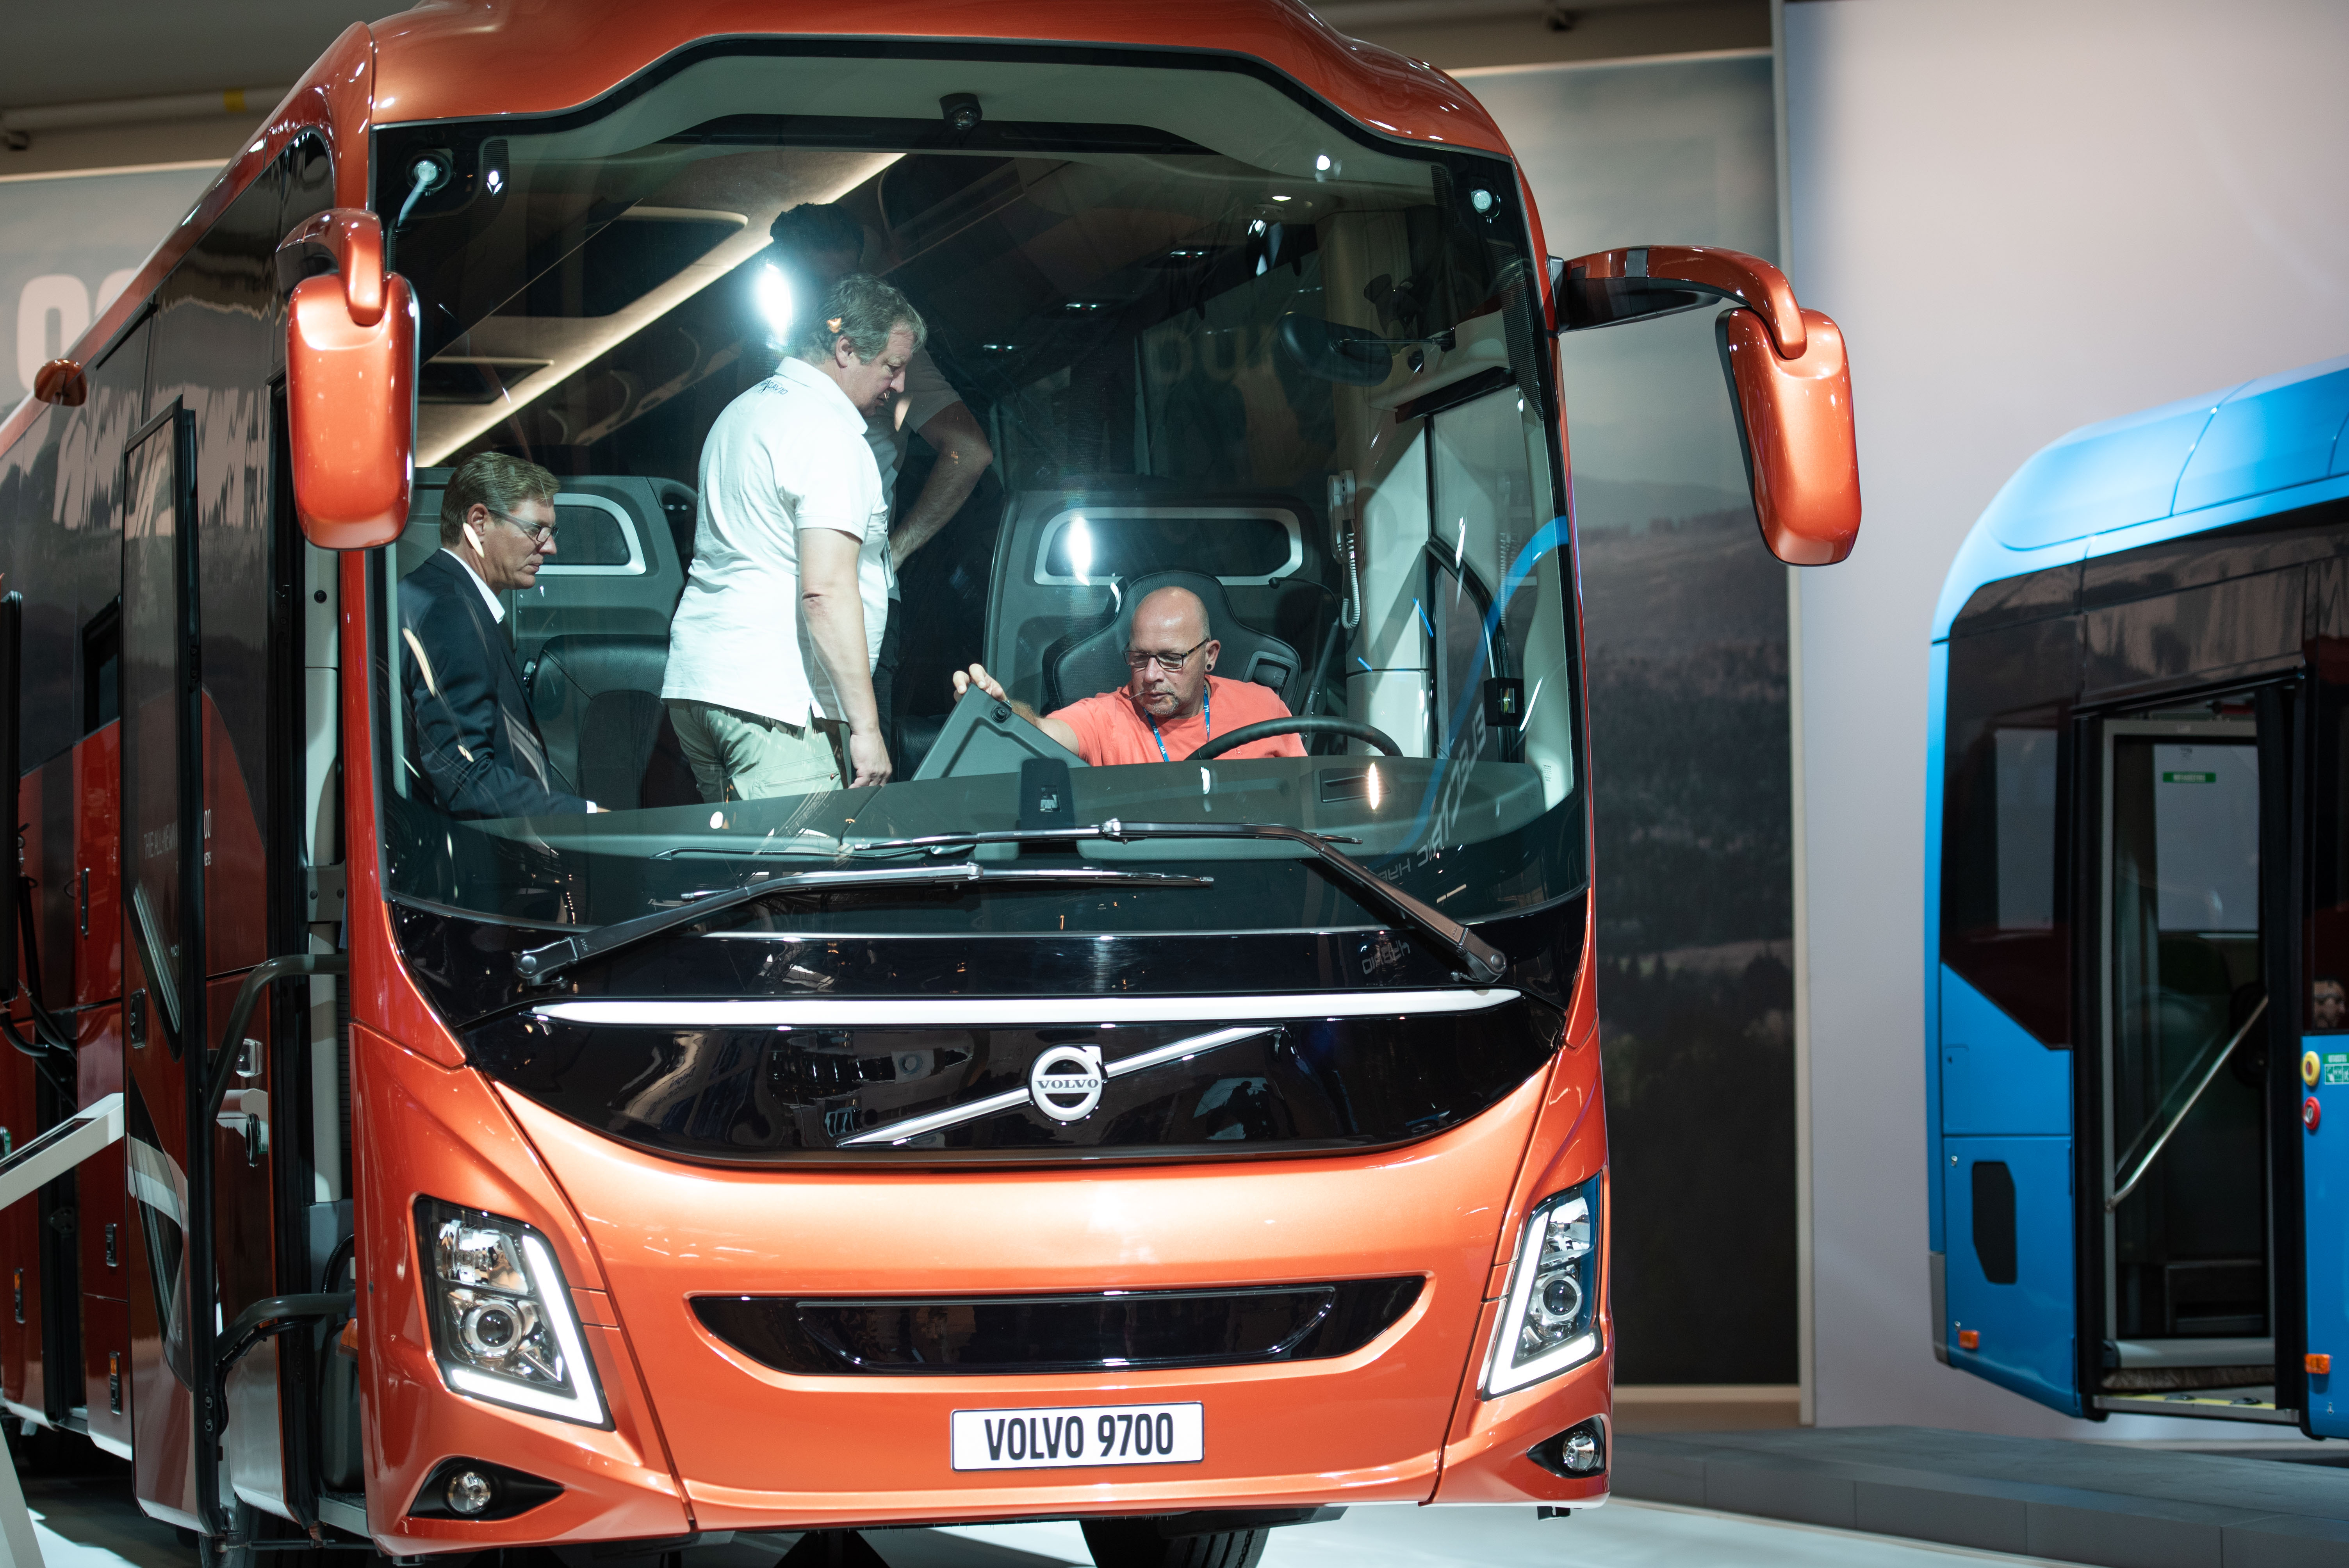 Volvo Buses' new coach wins Sustainable Bus Award